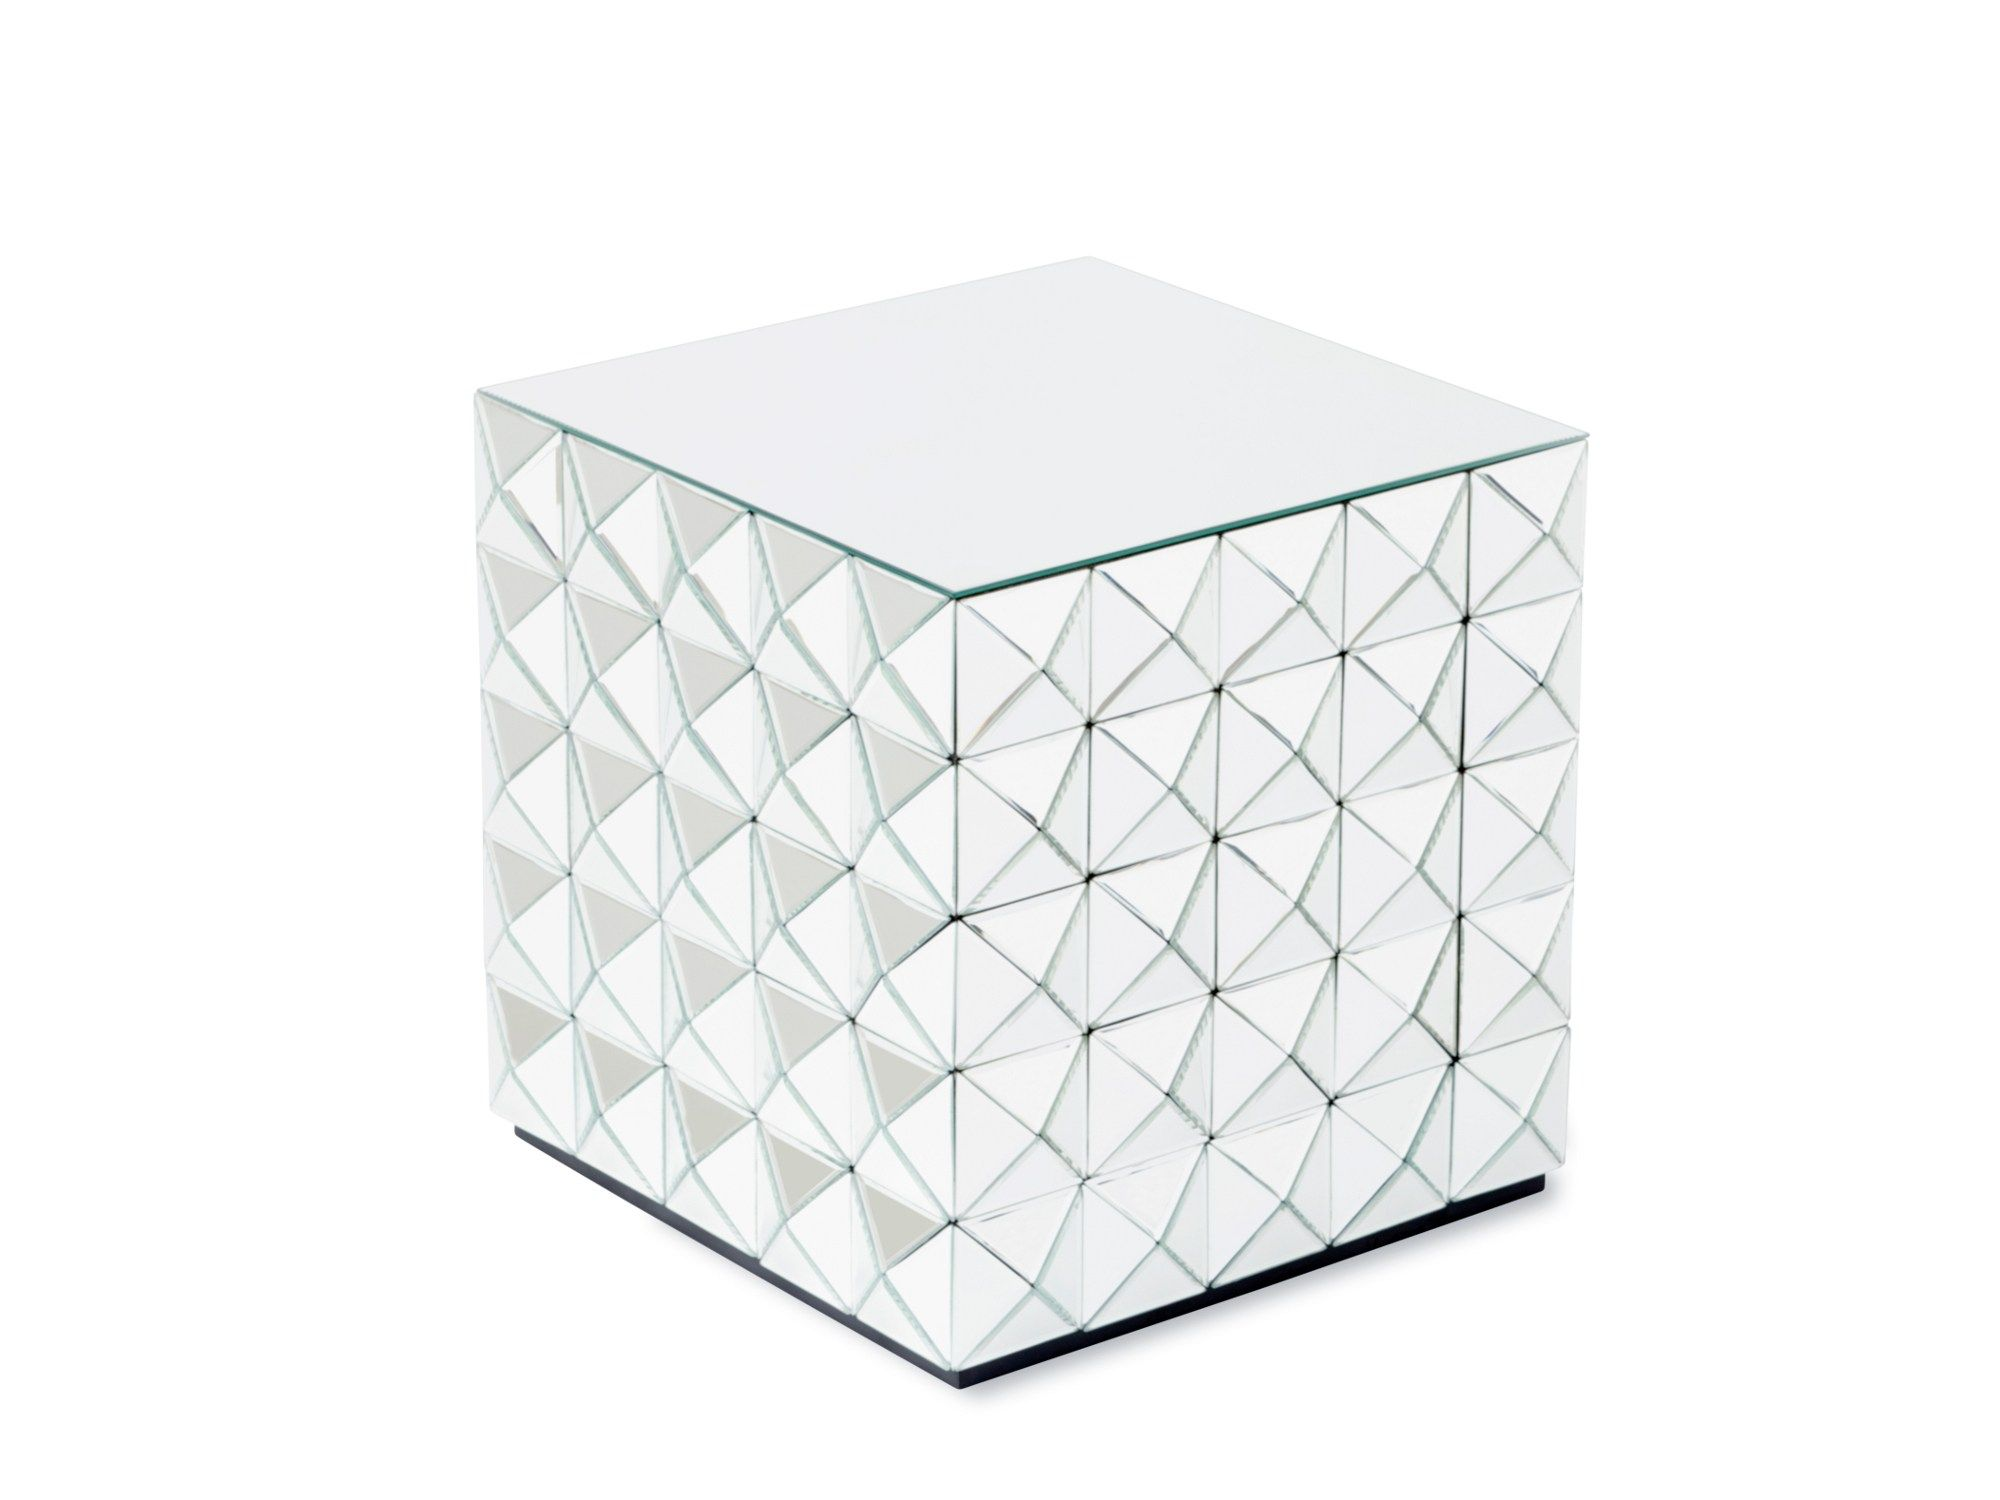 HARLEKIN   Reflections Copenhagen | Handcrafted Side Table With 4mm Faceted  Mirror On Black Painted MDF